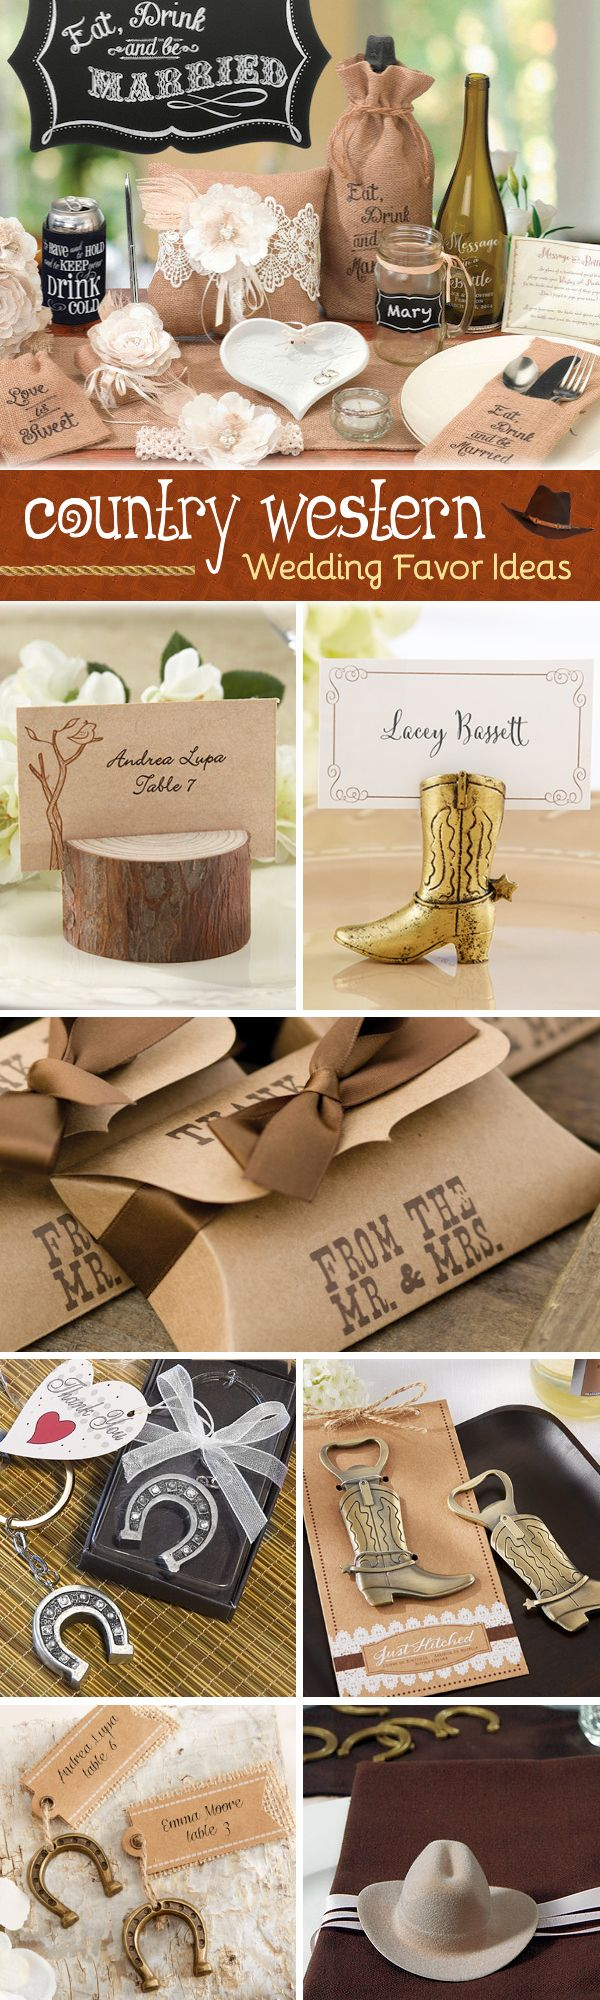 Offers Western Wedding Favors And Rustic Country Theme Party Favors Such As  Horseshoes, Cow Print, Cowboy Hats, Burlap Bags And More!